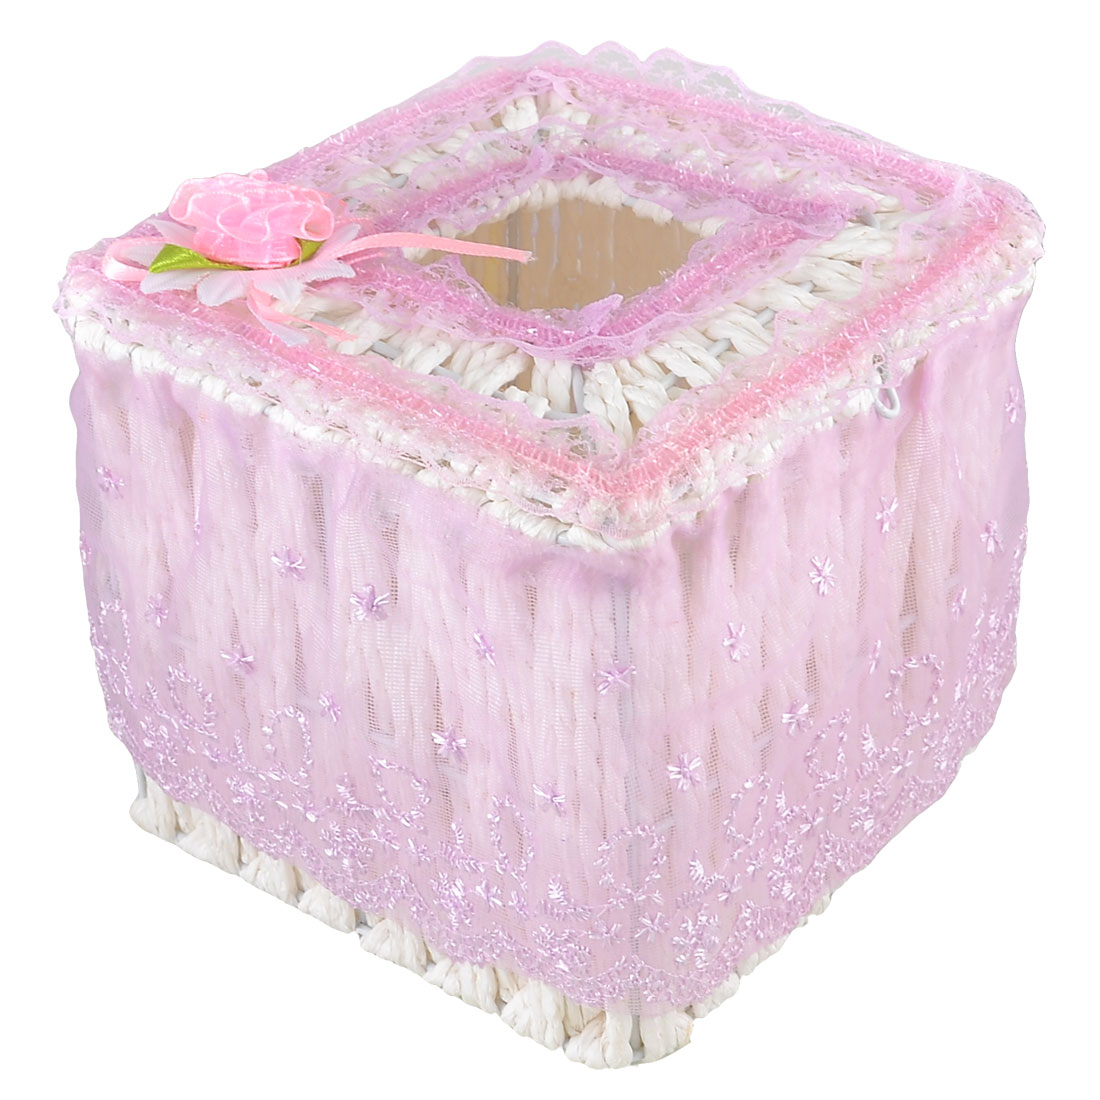 Light Purple Floral Lace Detailed Square Shape White Woven Tissue Box Case